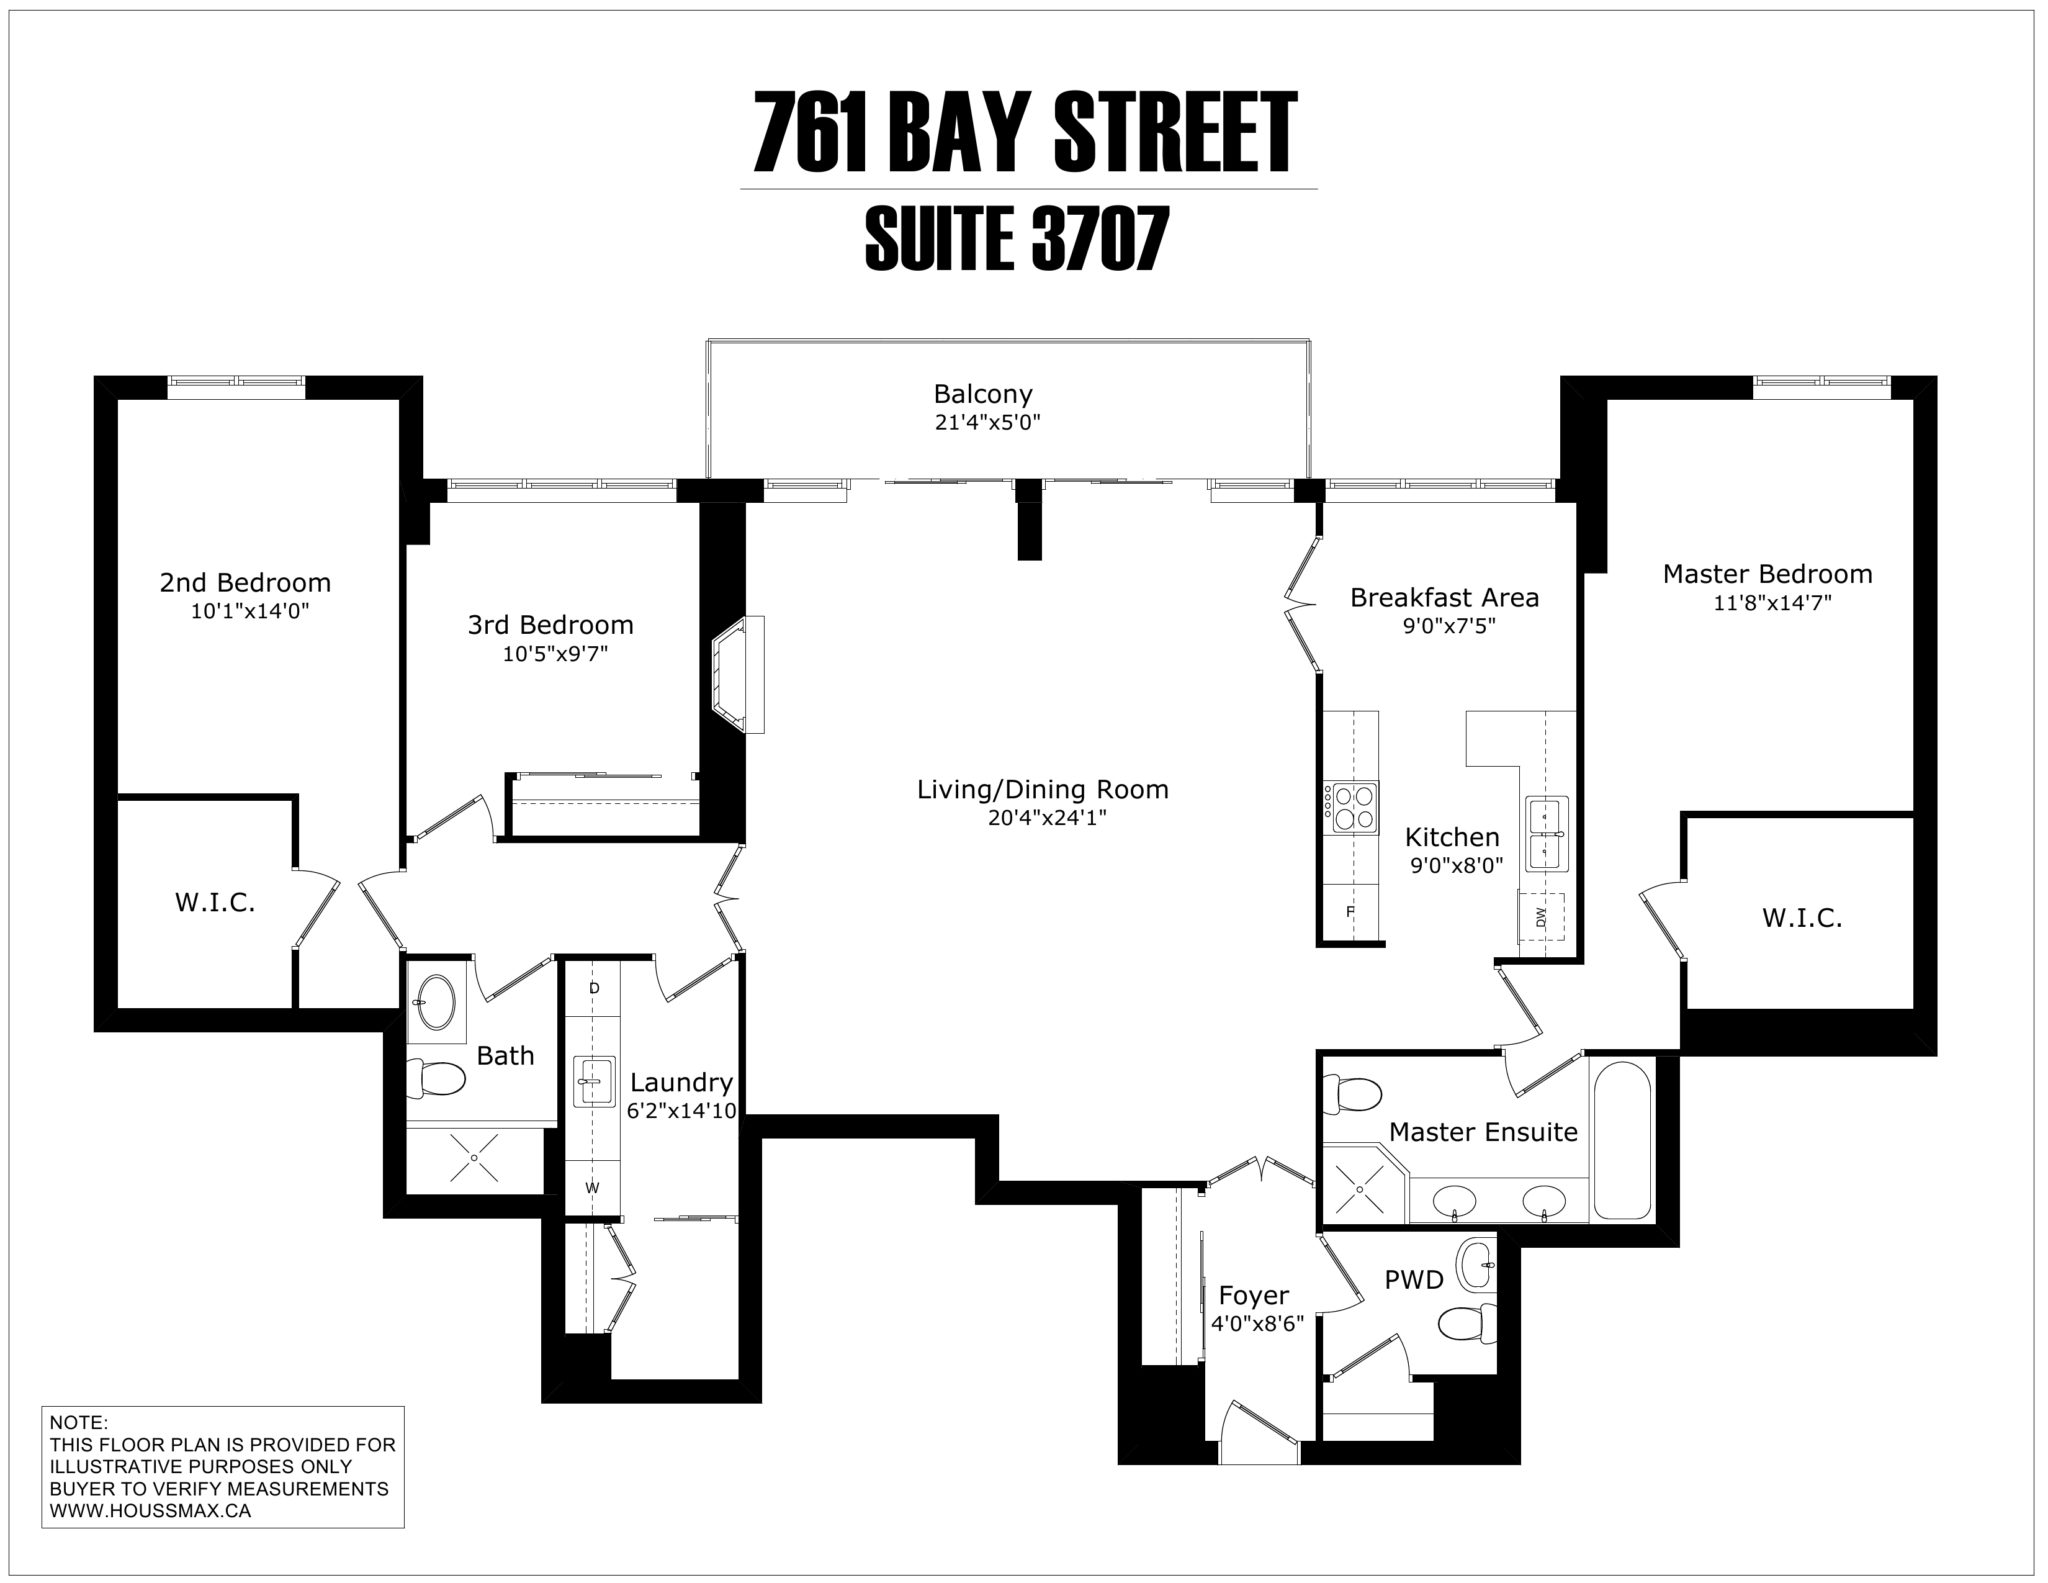 761 Bay Street - Unit 3707 - Floor Plans